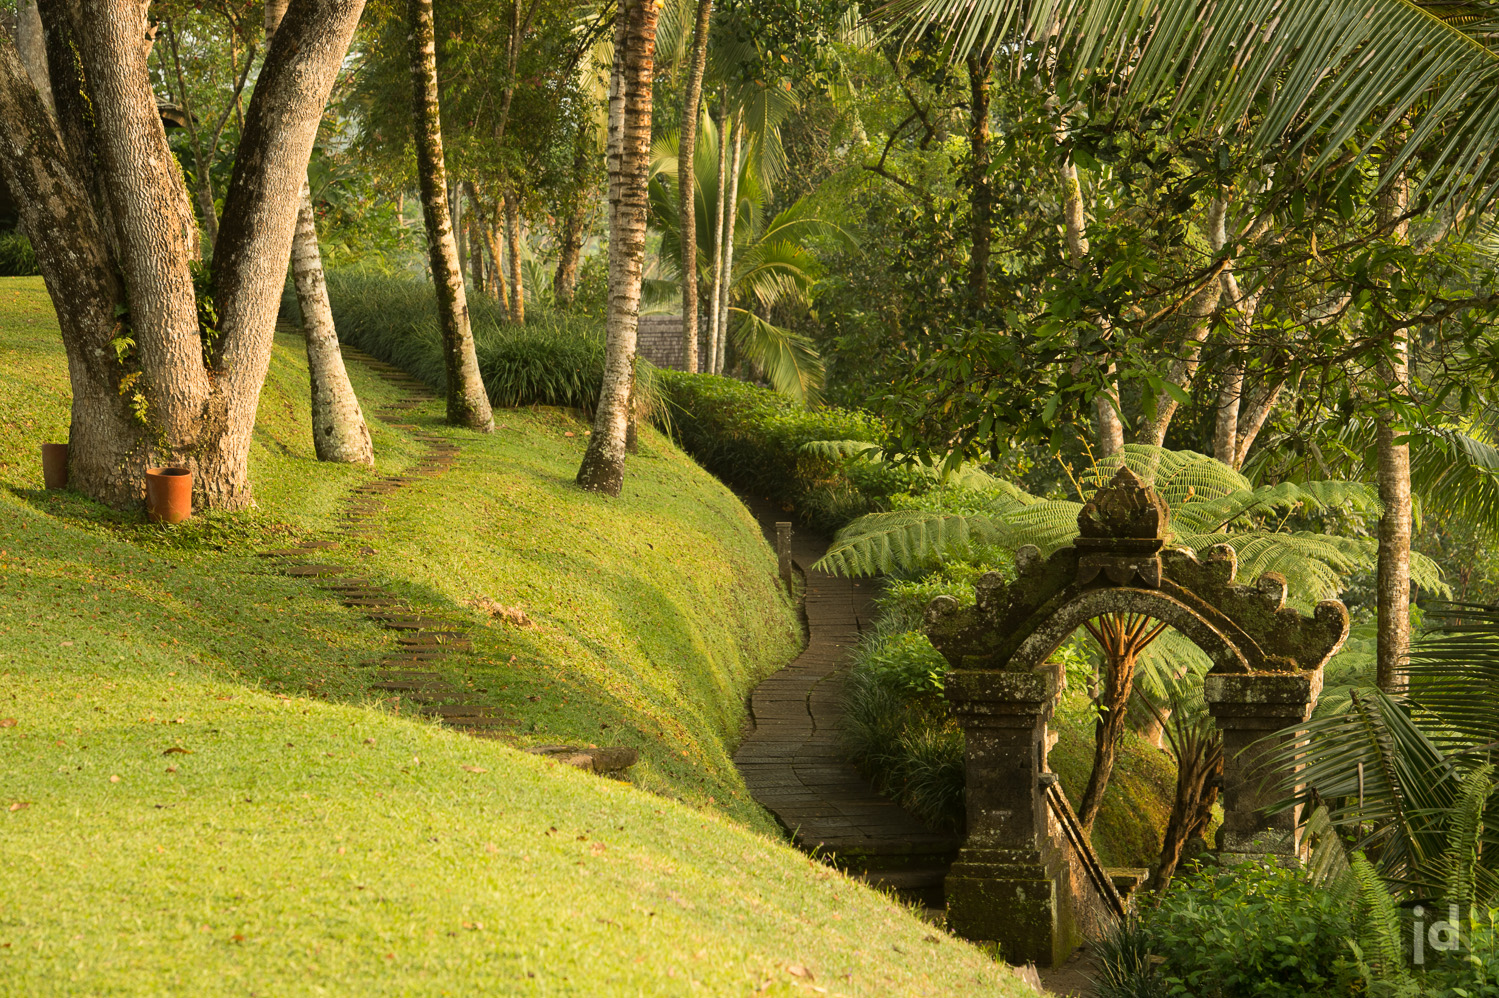 Bali_Indonesia_Photography_Jason_Davis_Images_030.jpg